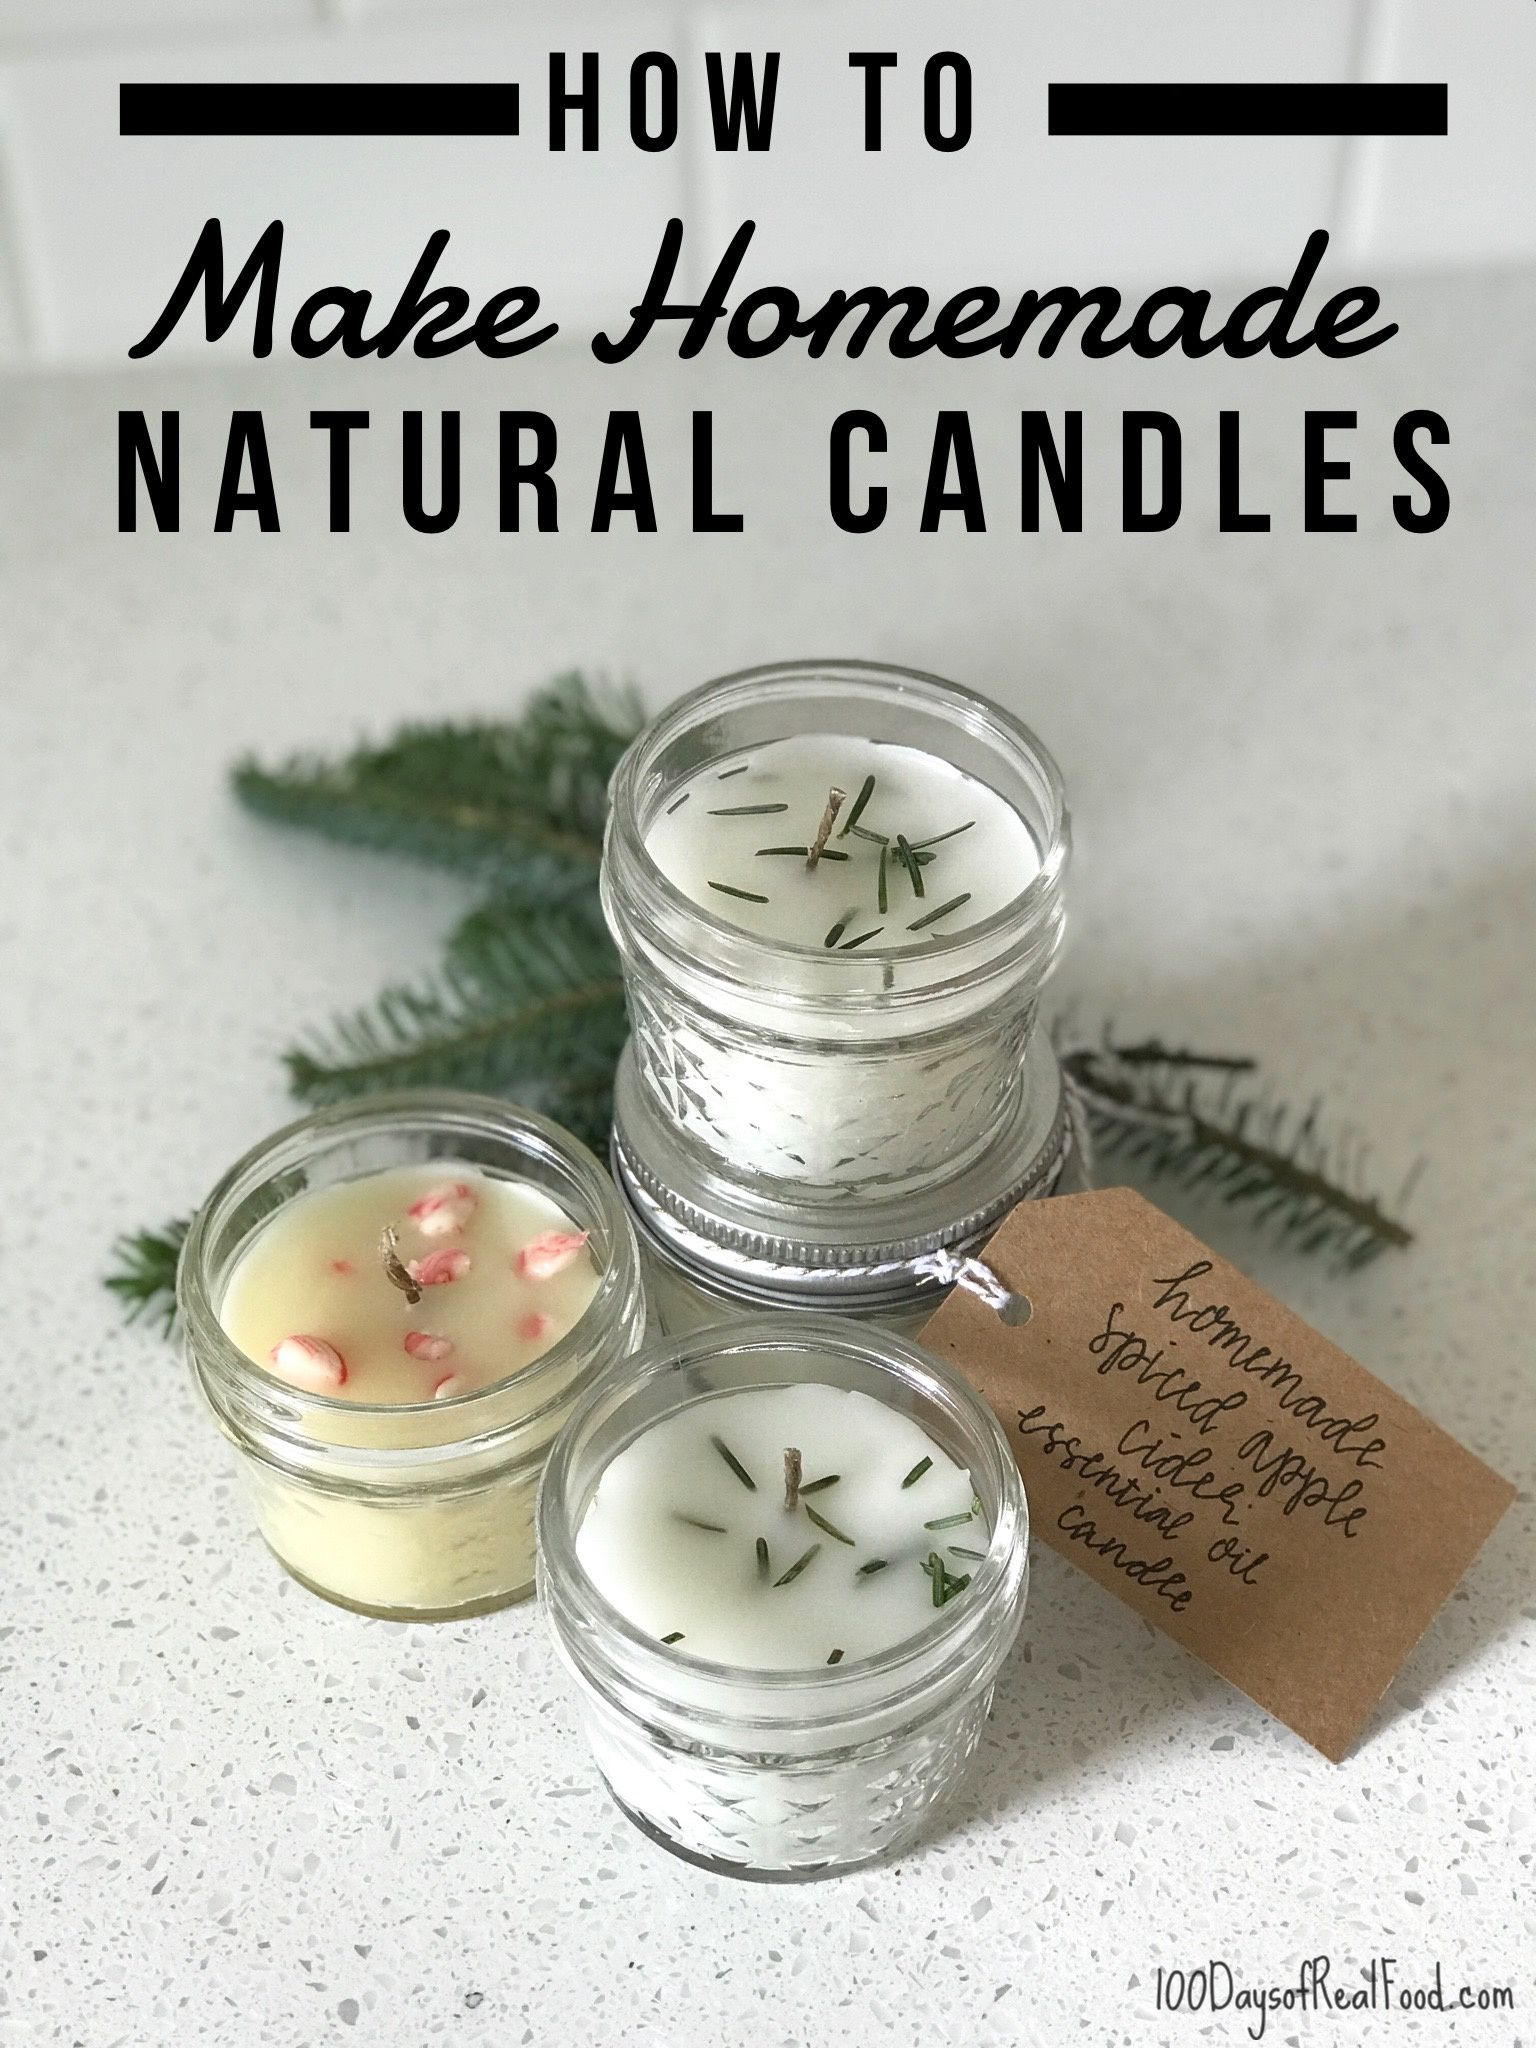 How to Make Homemade Natural Candles #candlemakingbusiness